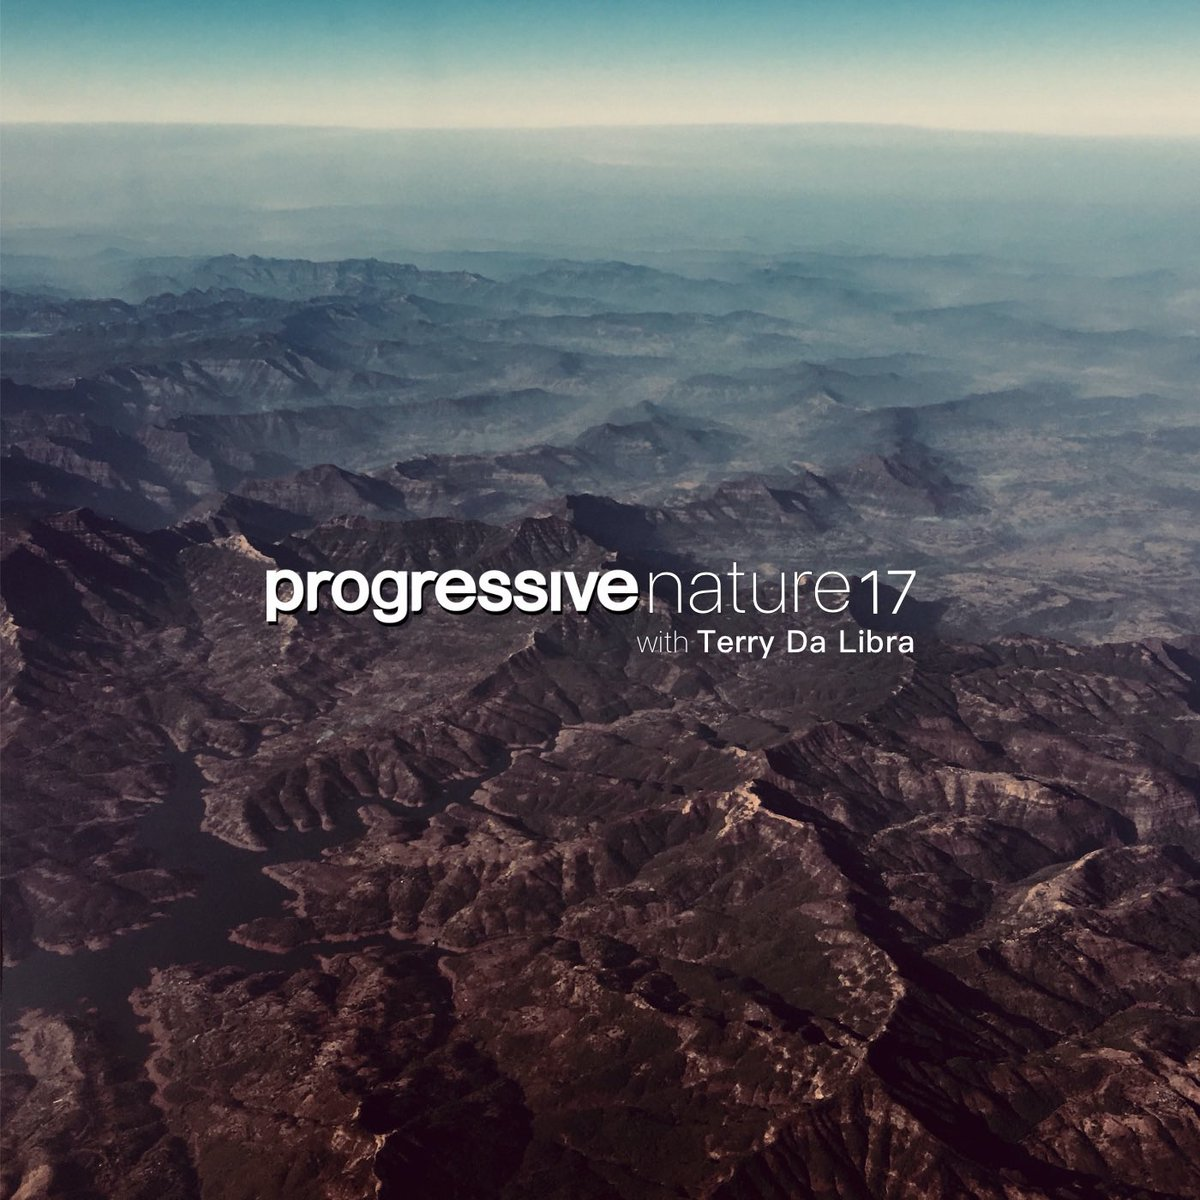 Next week host's our first guest mix on Progressive Nature. Greece's very own Terry Da Libra Listen to the @terrydalibra guest mix live at 8pm Sunday on YouTube #progressivenature17pic.twitter.com/N6jqPudeUG  by Ariscan